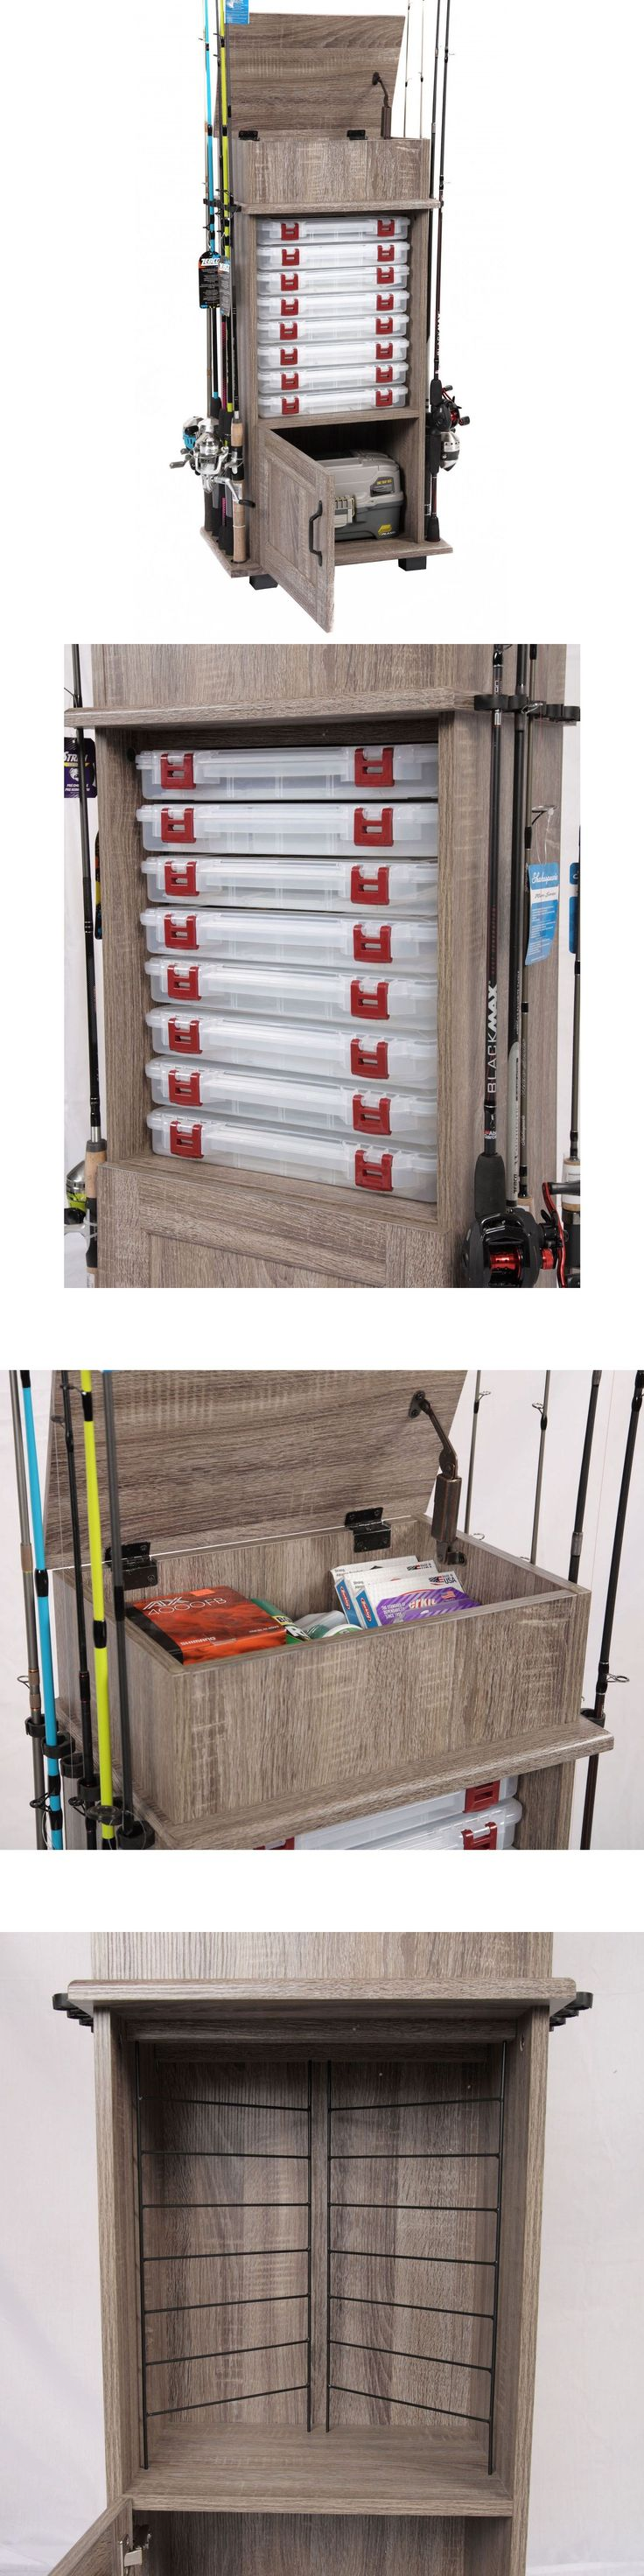 25 best ideas about fishing storage on pinterest used for Fishing tackle storage